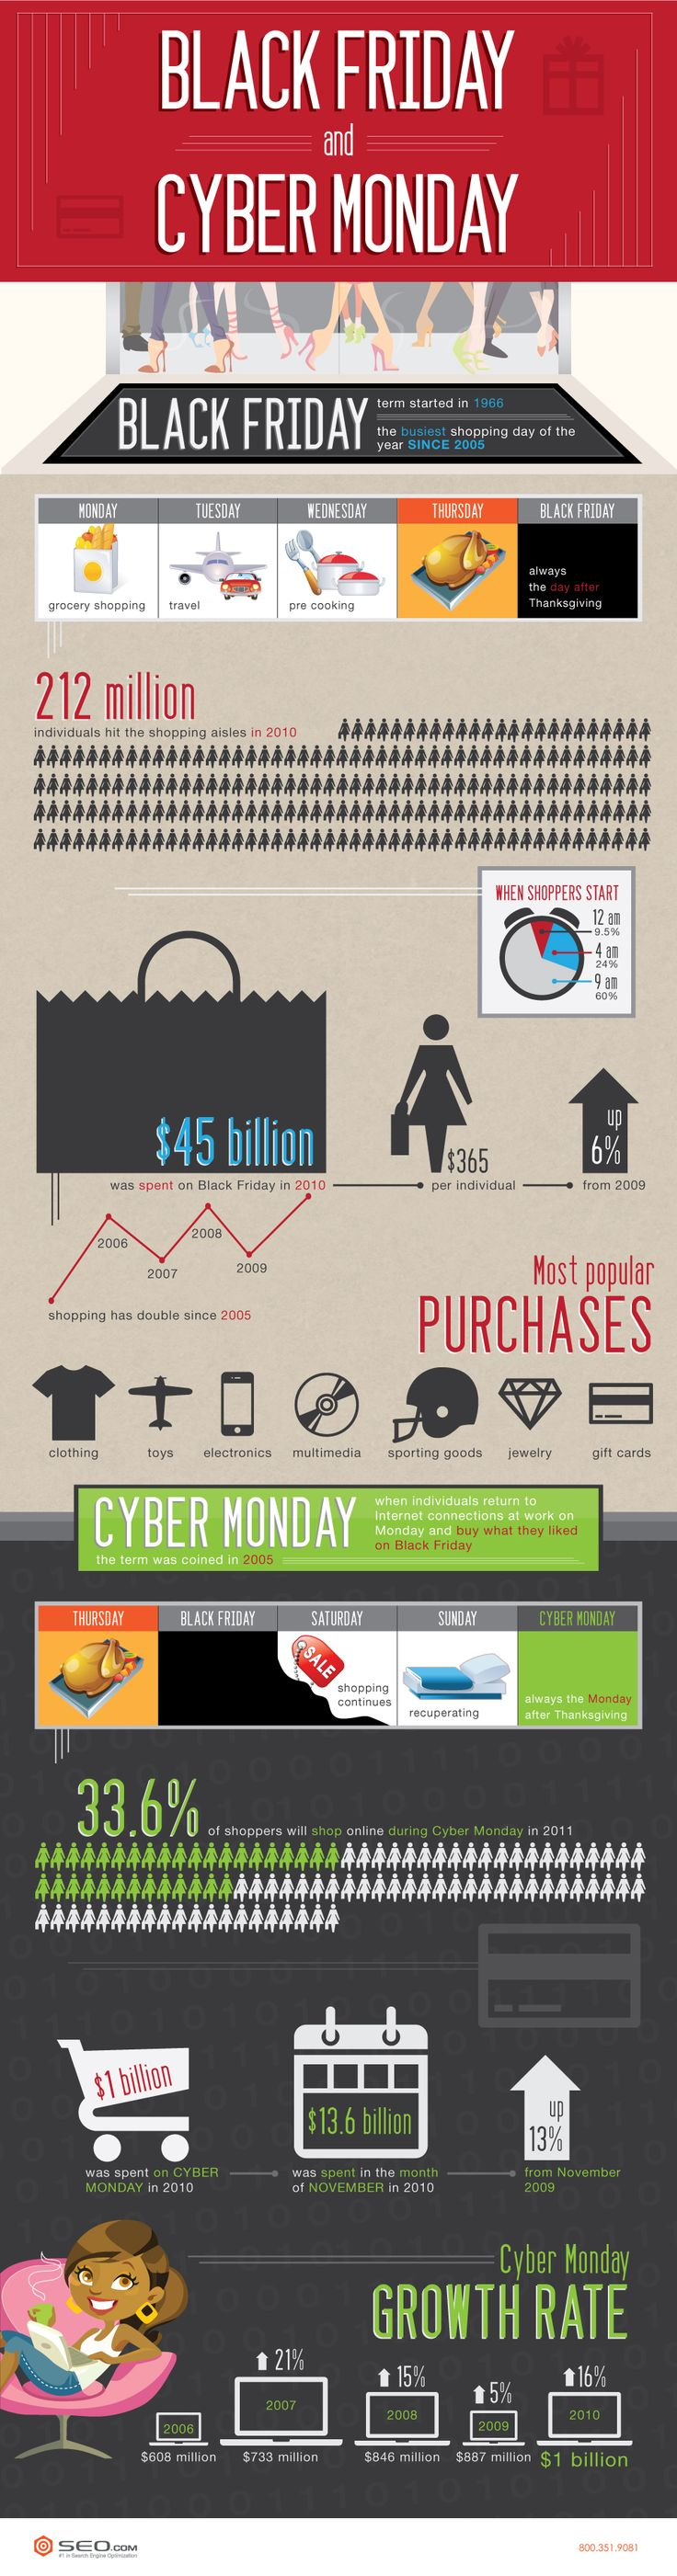 Black Friday and Cyber Monday: A Quick Look at the Busiest Days of the Year for Retail Sales #blackfriday #cybermonday #ecommerce